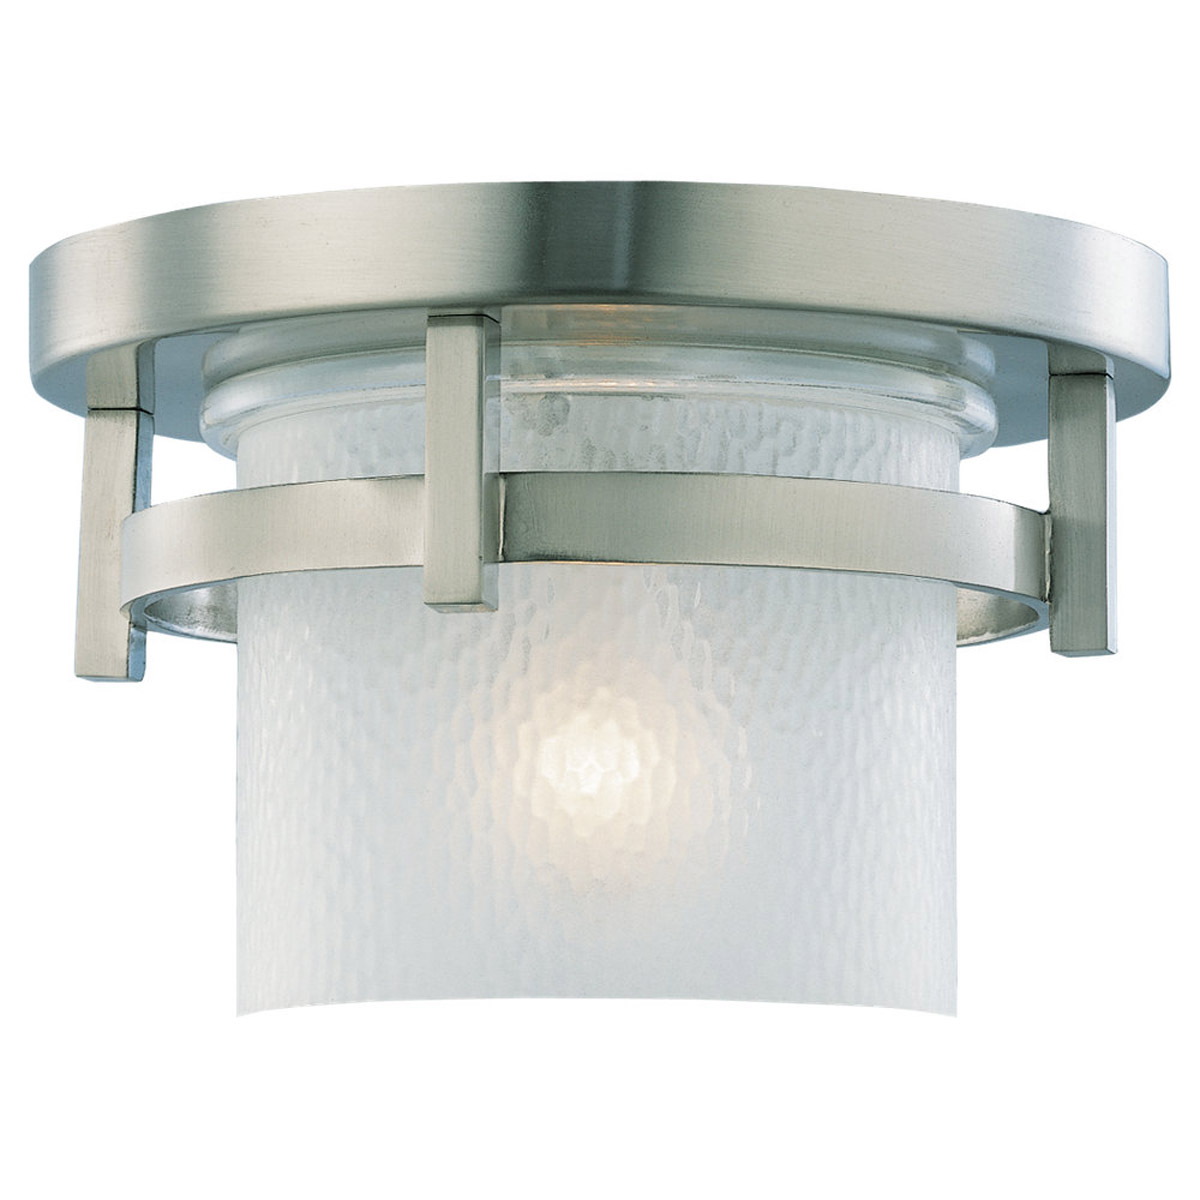 Sea Gull Lighting Eternity 1 Light Outdoor Wall Lantern in Brushed Nickel 88115-962